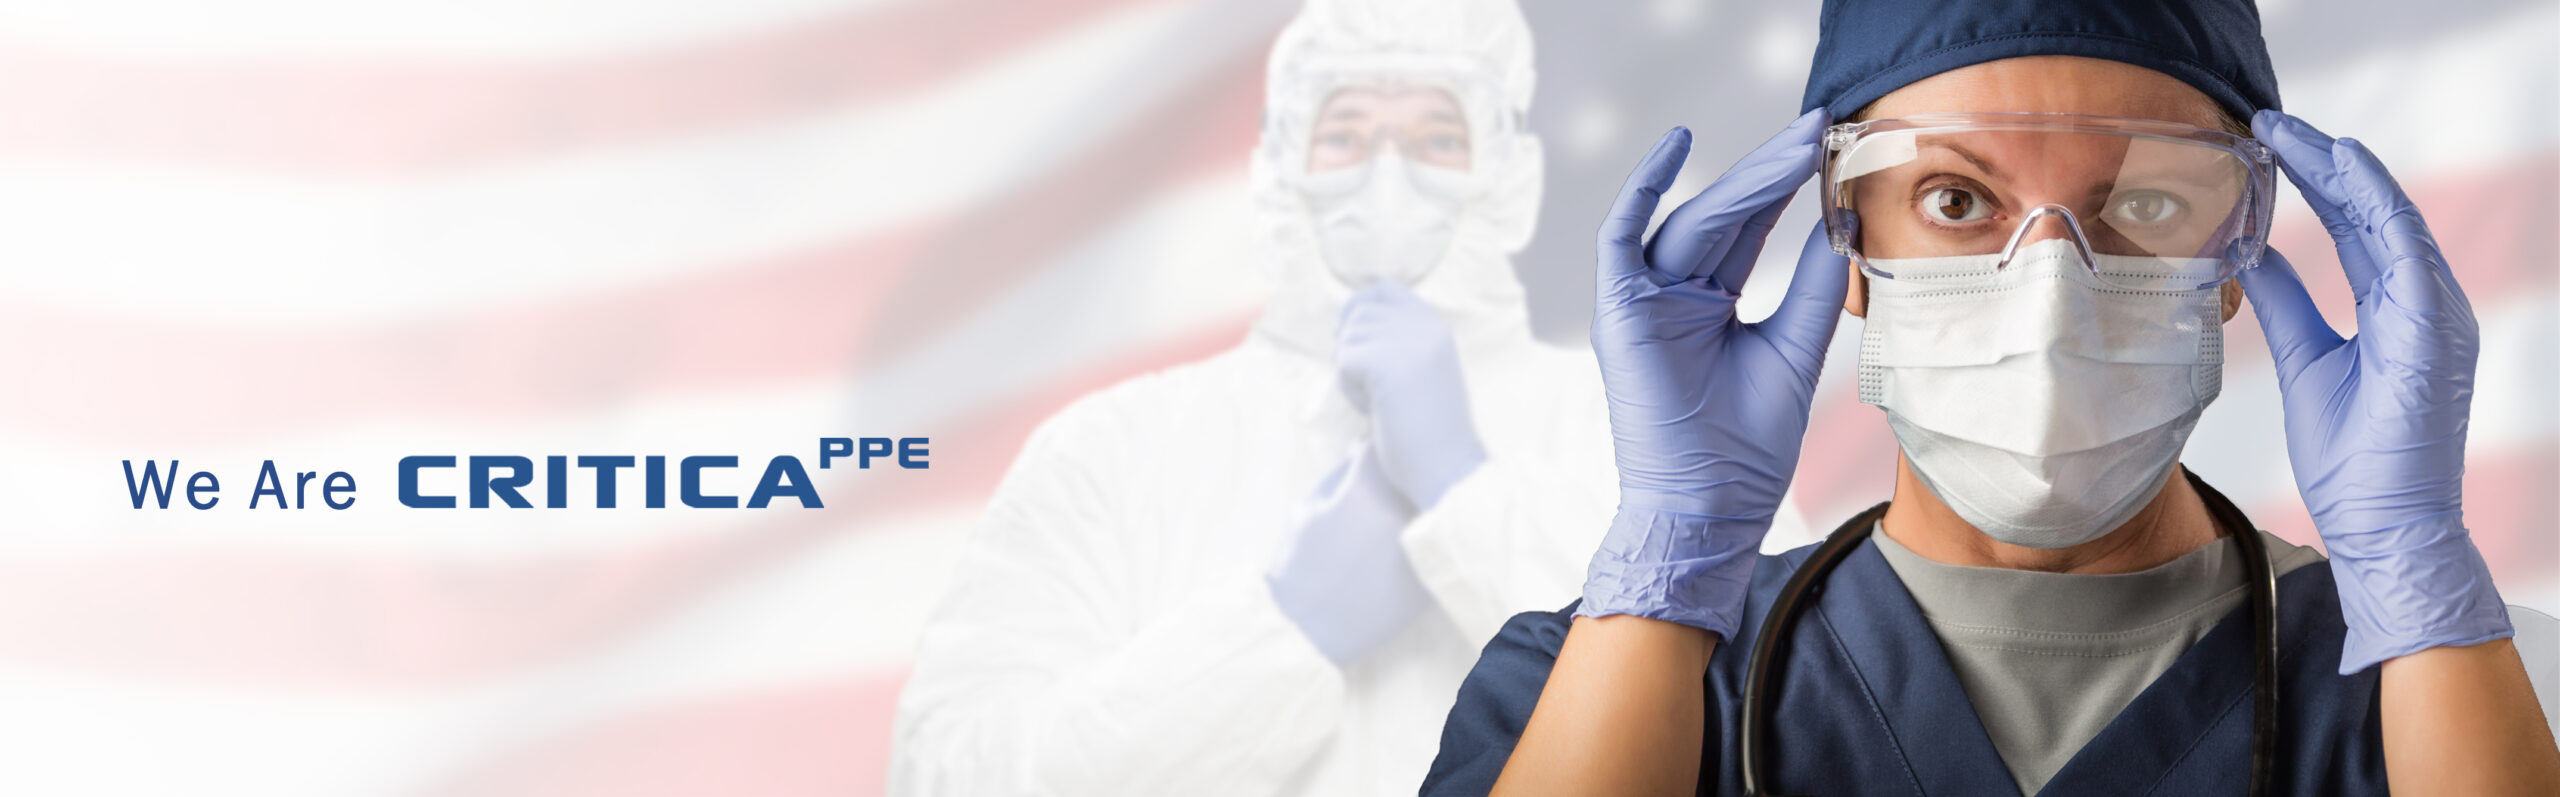 Critica PPE Protecting the health and well being of those who rely upon top quality personal protection